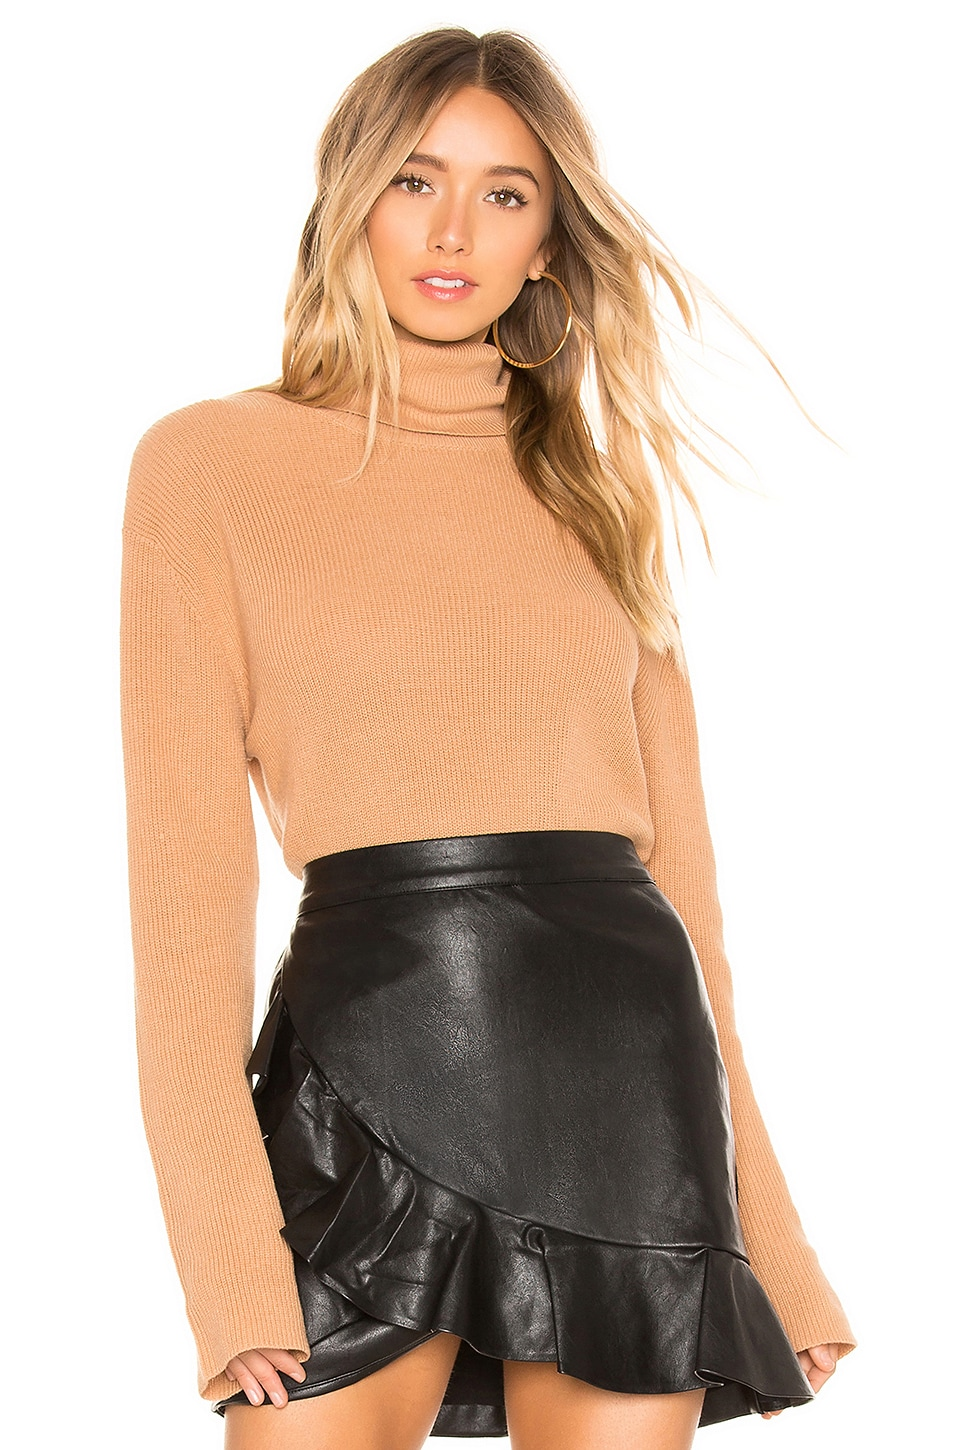 CALLAHAN X Revolve Turtleneck Sweater in Tan